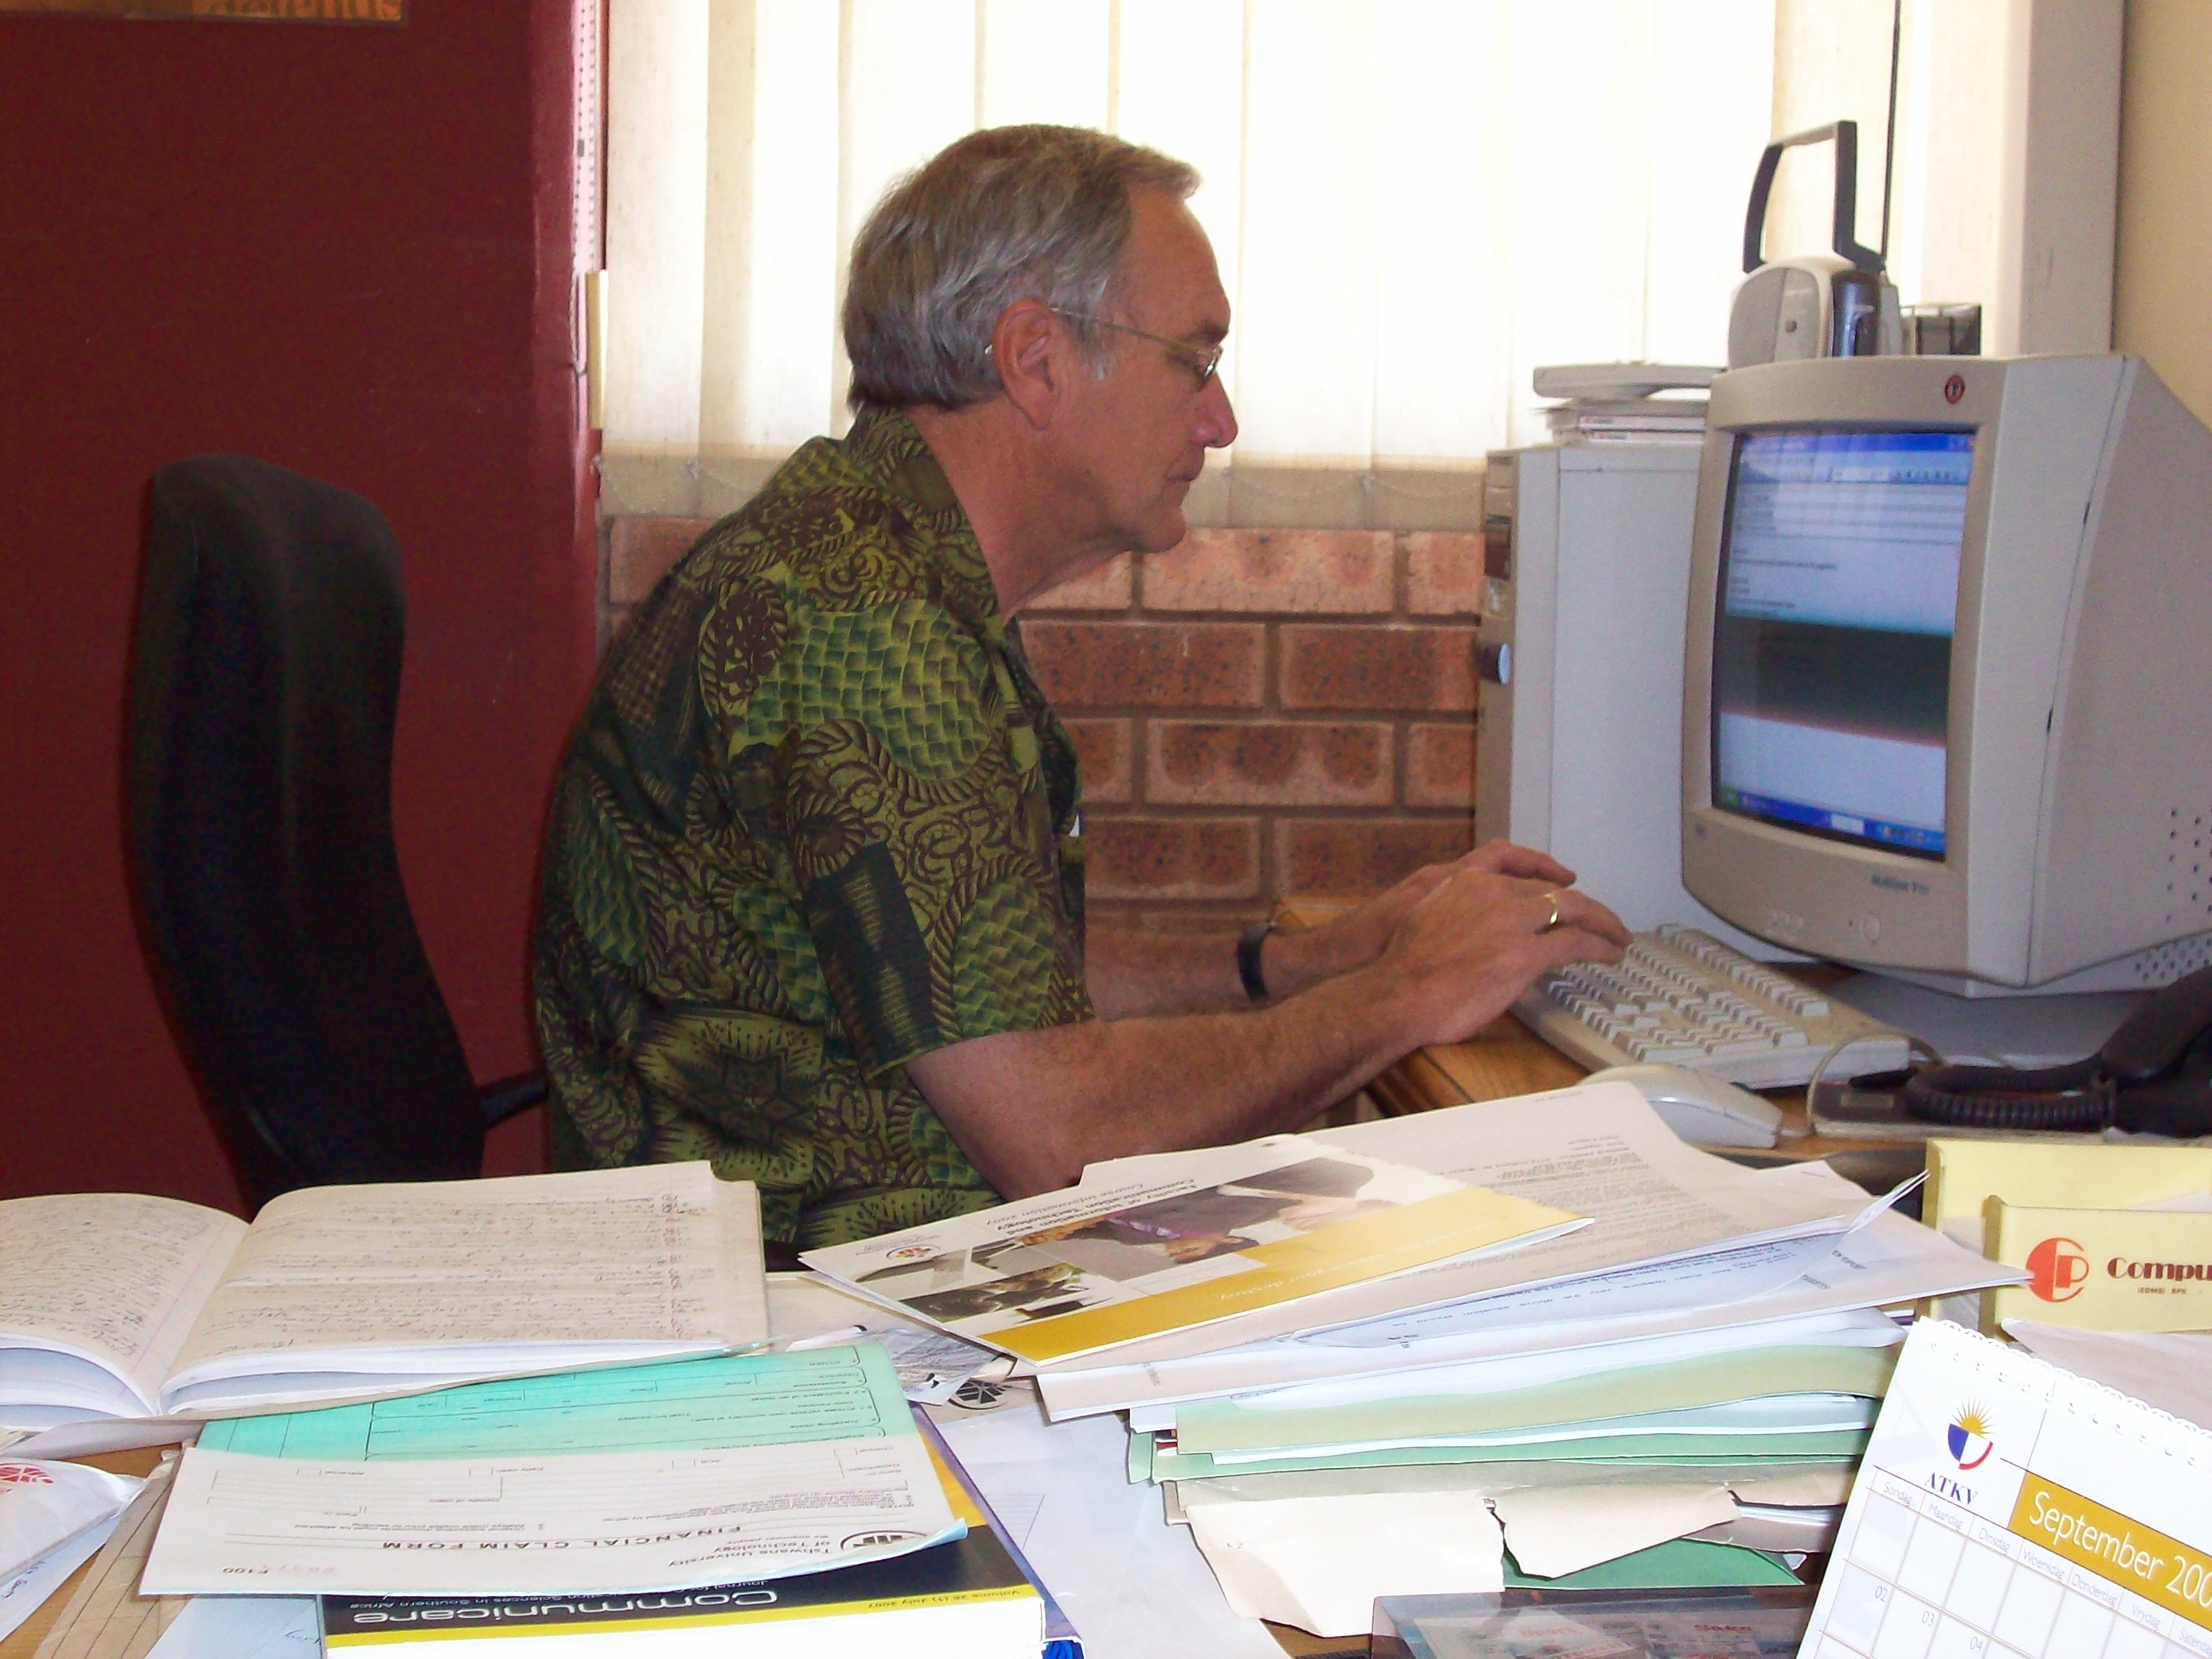 Pedro Diederichs heads the Journalism Department at Tshwane University of Technology in Pretoria, South Africa